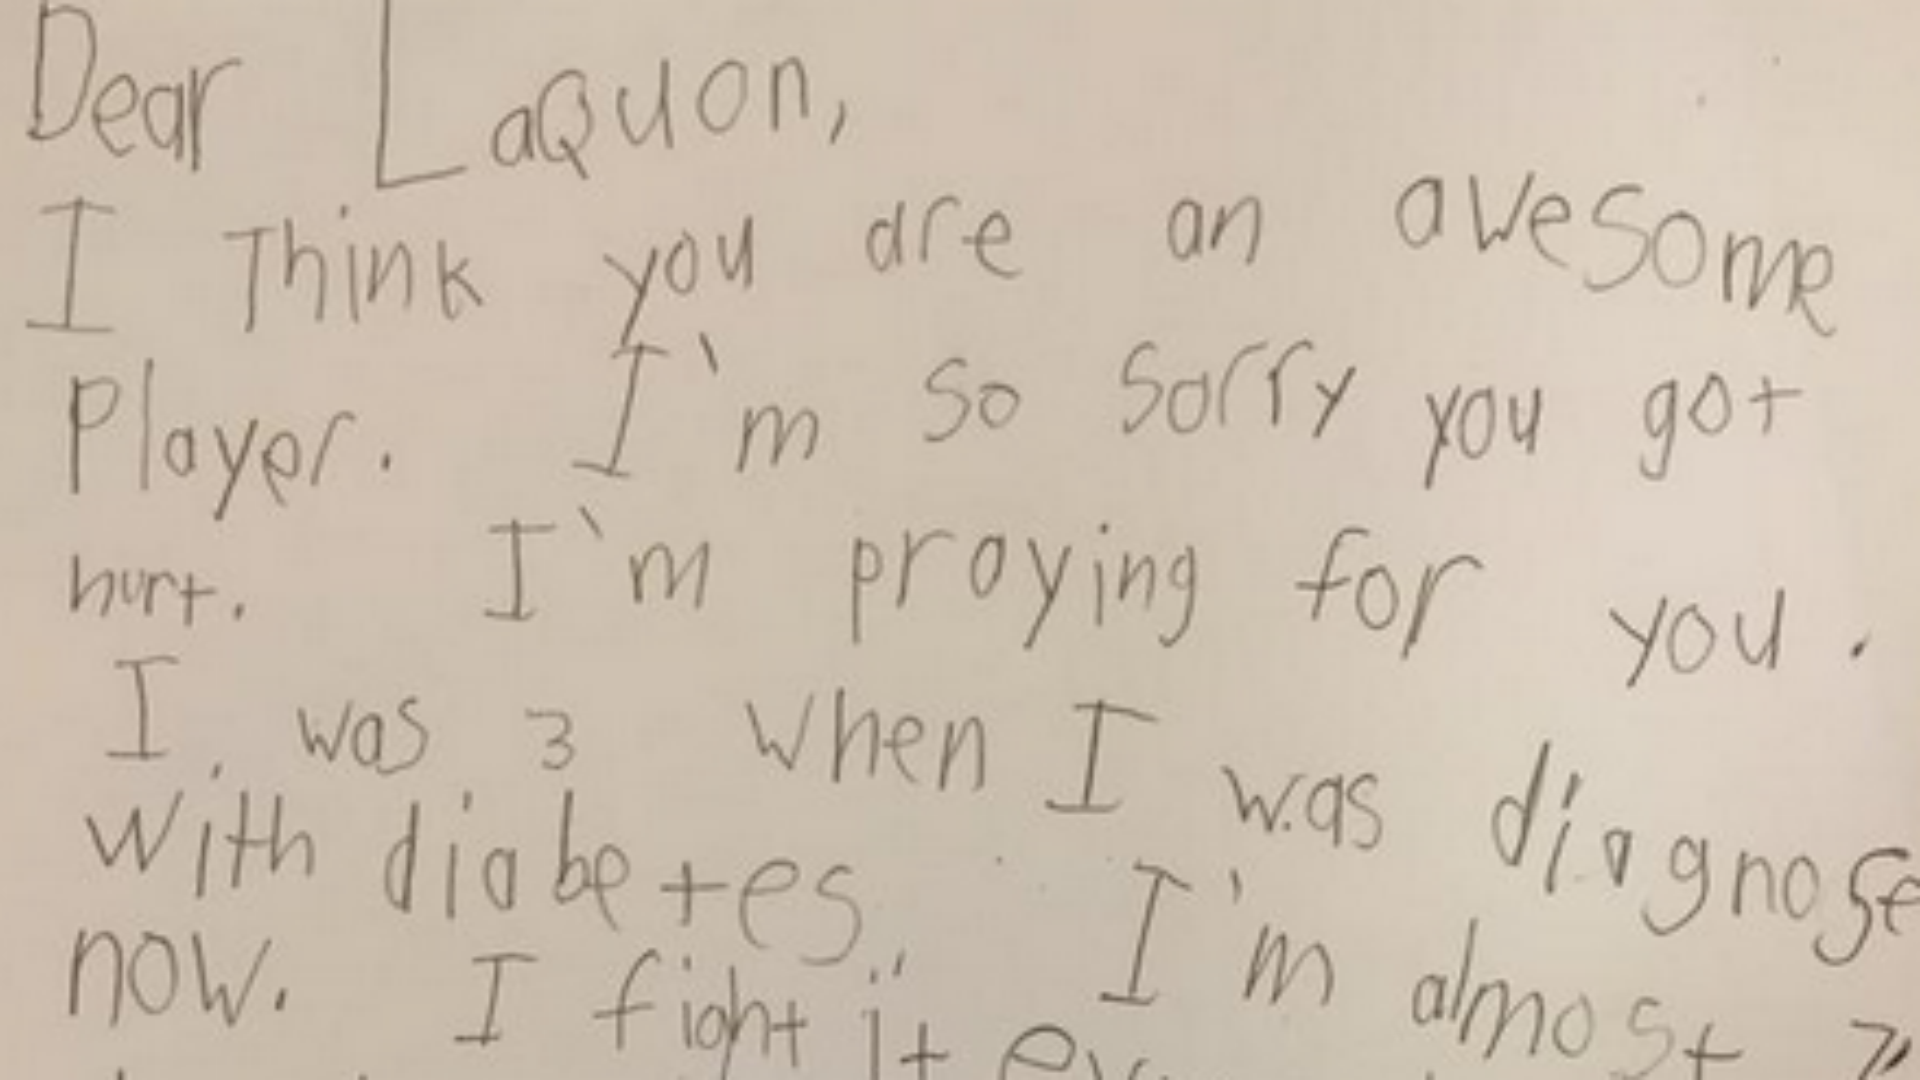 Laquon Treadwell Gets Outpouring Of Support From Children  Ncaa